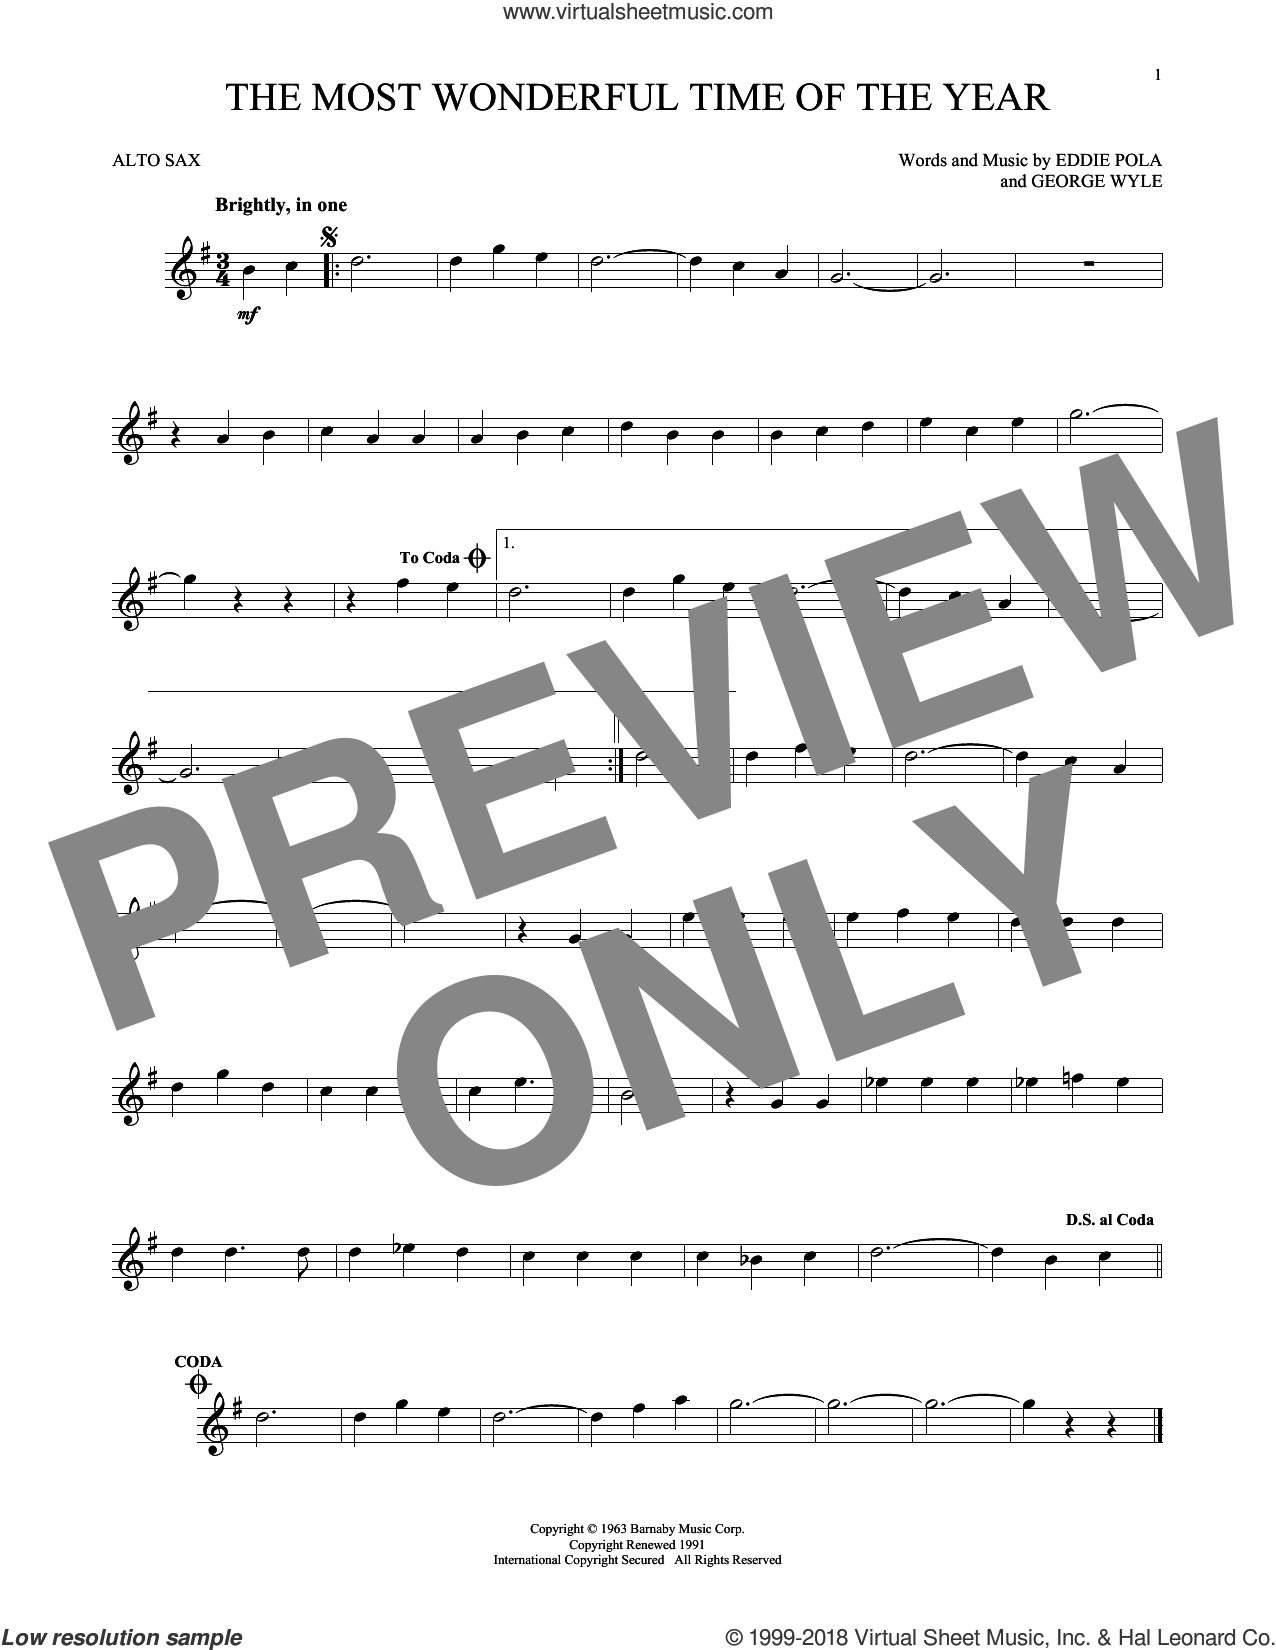 The Most Wonderful Time Of The Year sheet music for alto saxophone solo by George Wyle, Andy Williams, Eddie Pola and George Wyle & Eddie Pola, intermediate skill level